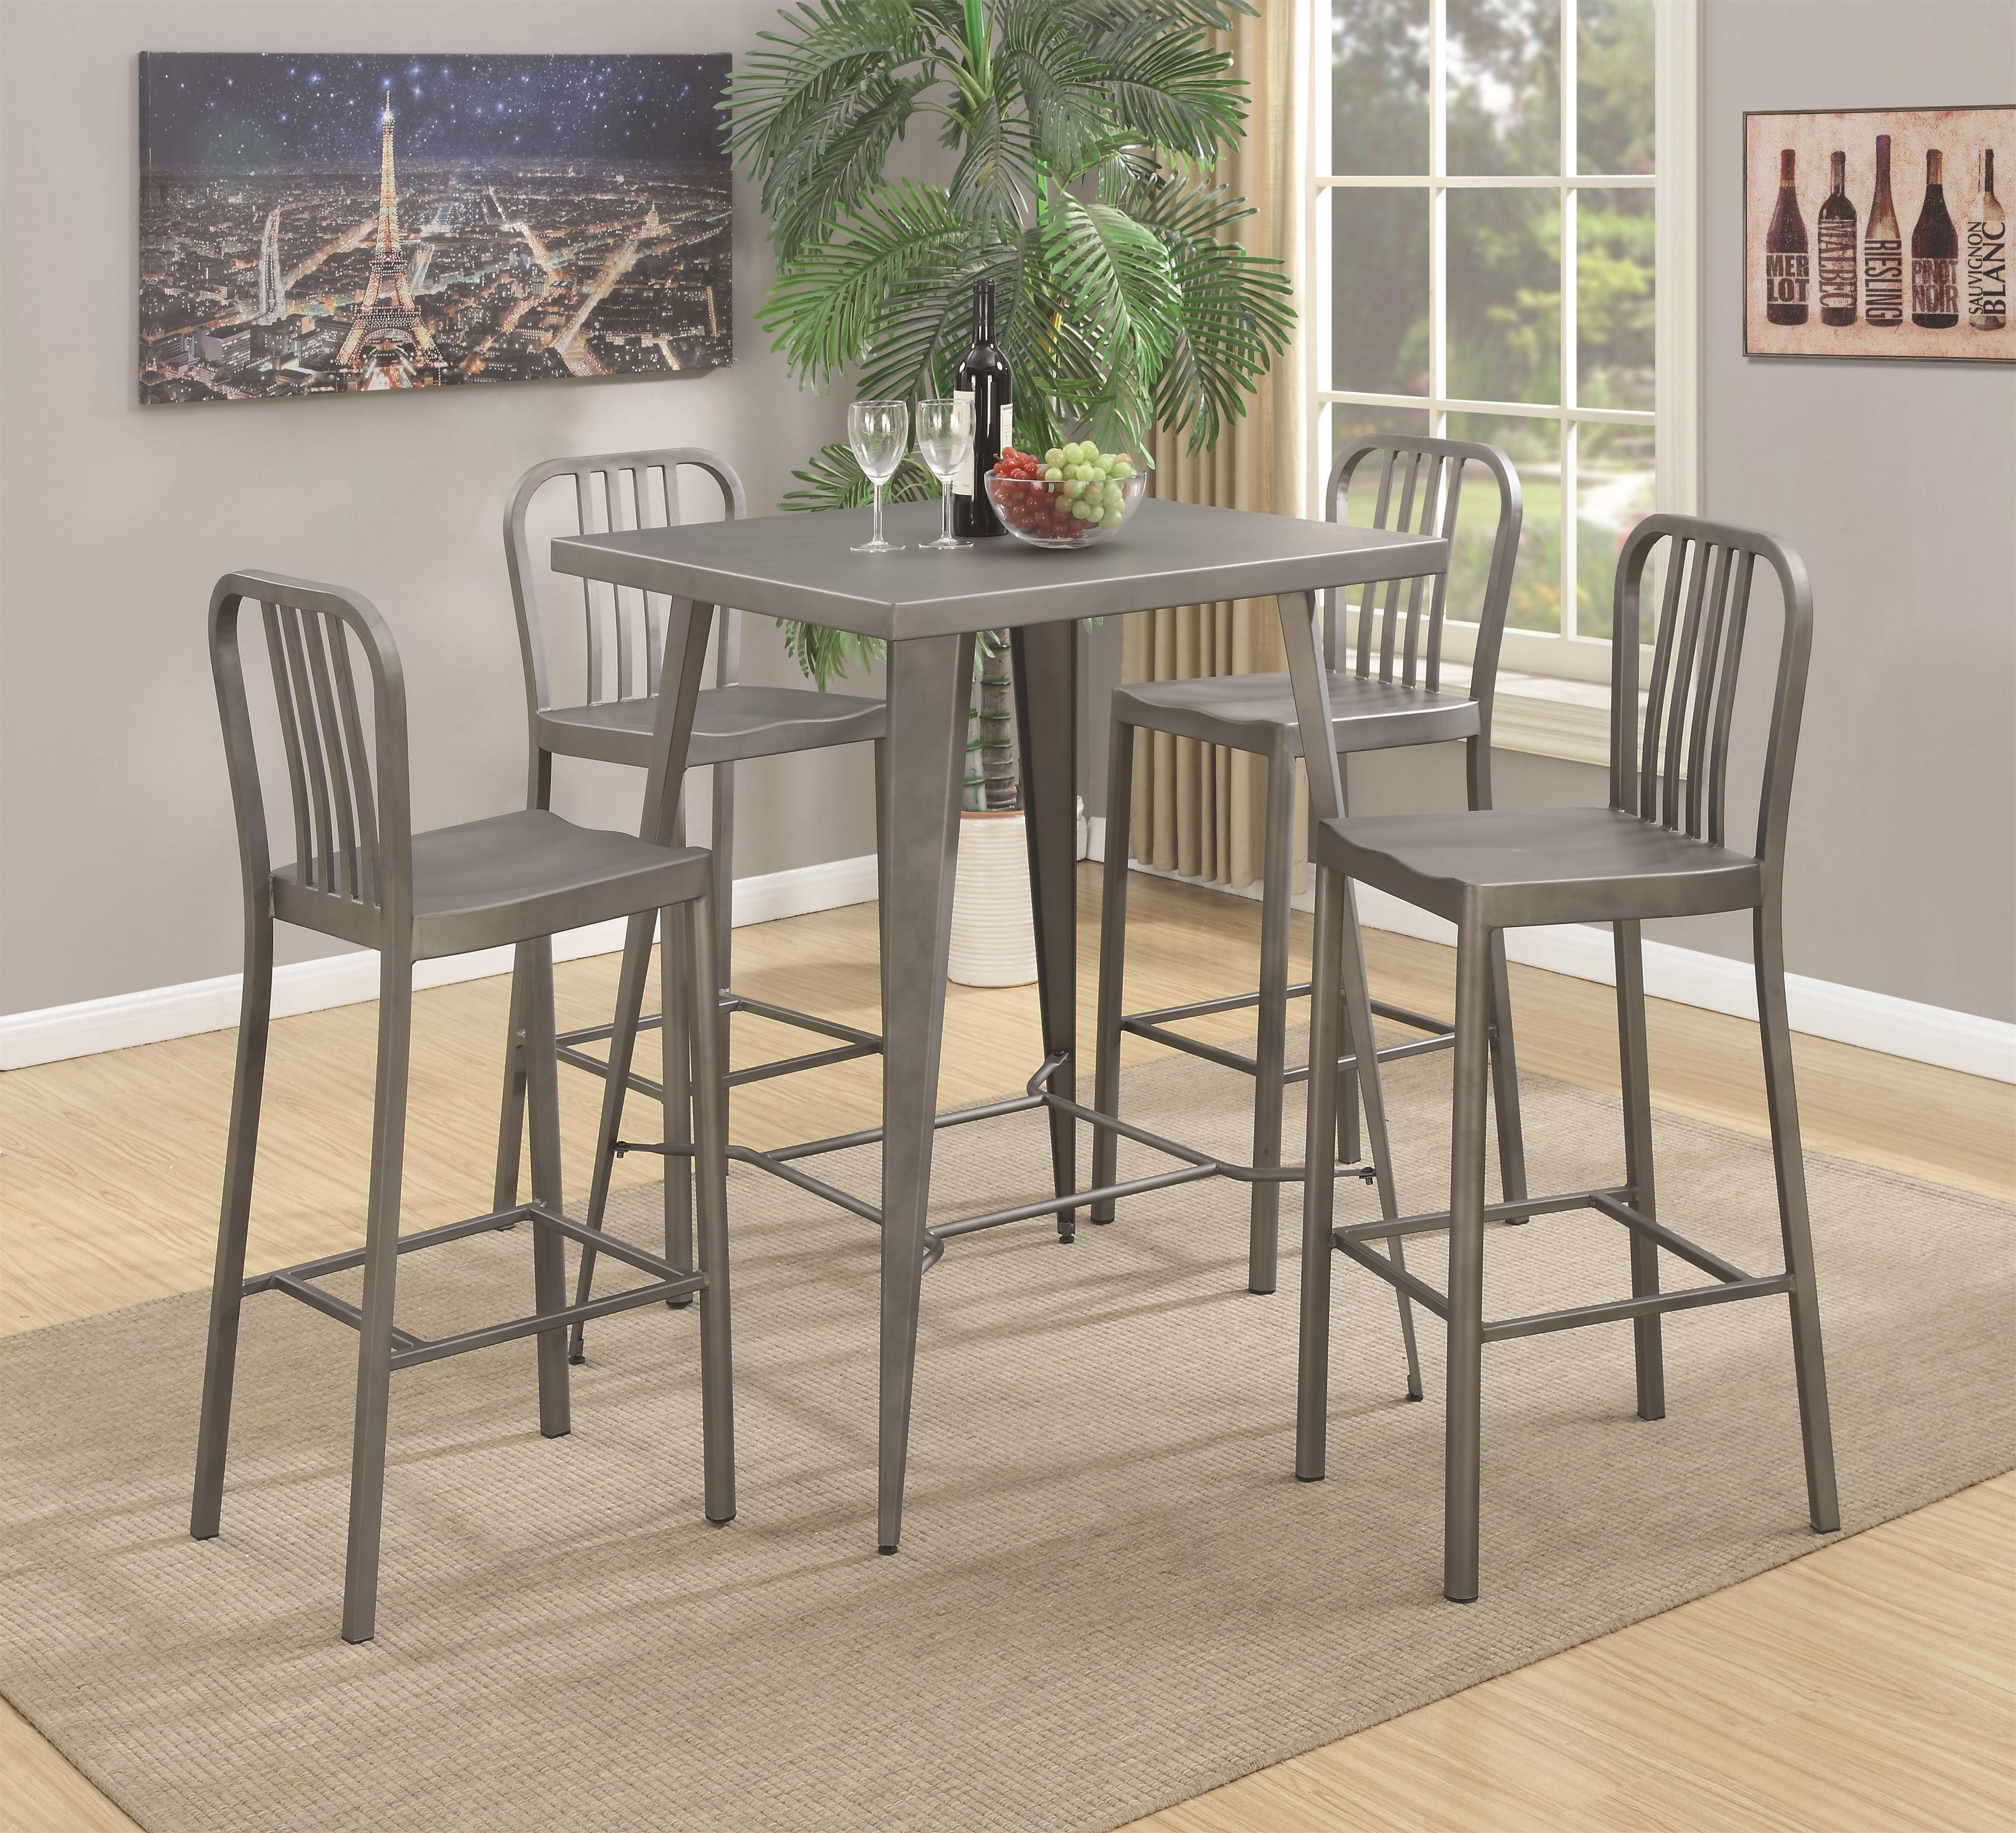 Coaster 10593 5 Piece Bar Table Set - Item Number: 105938+4x105939